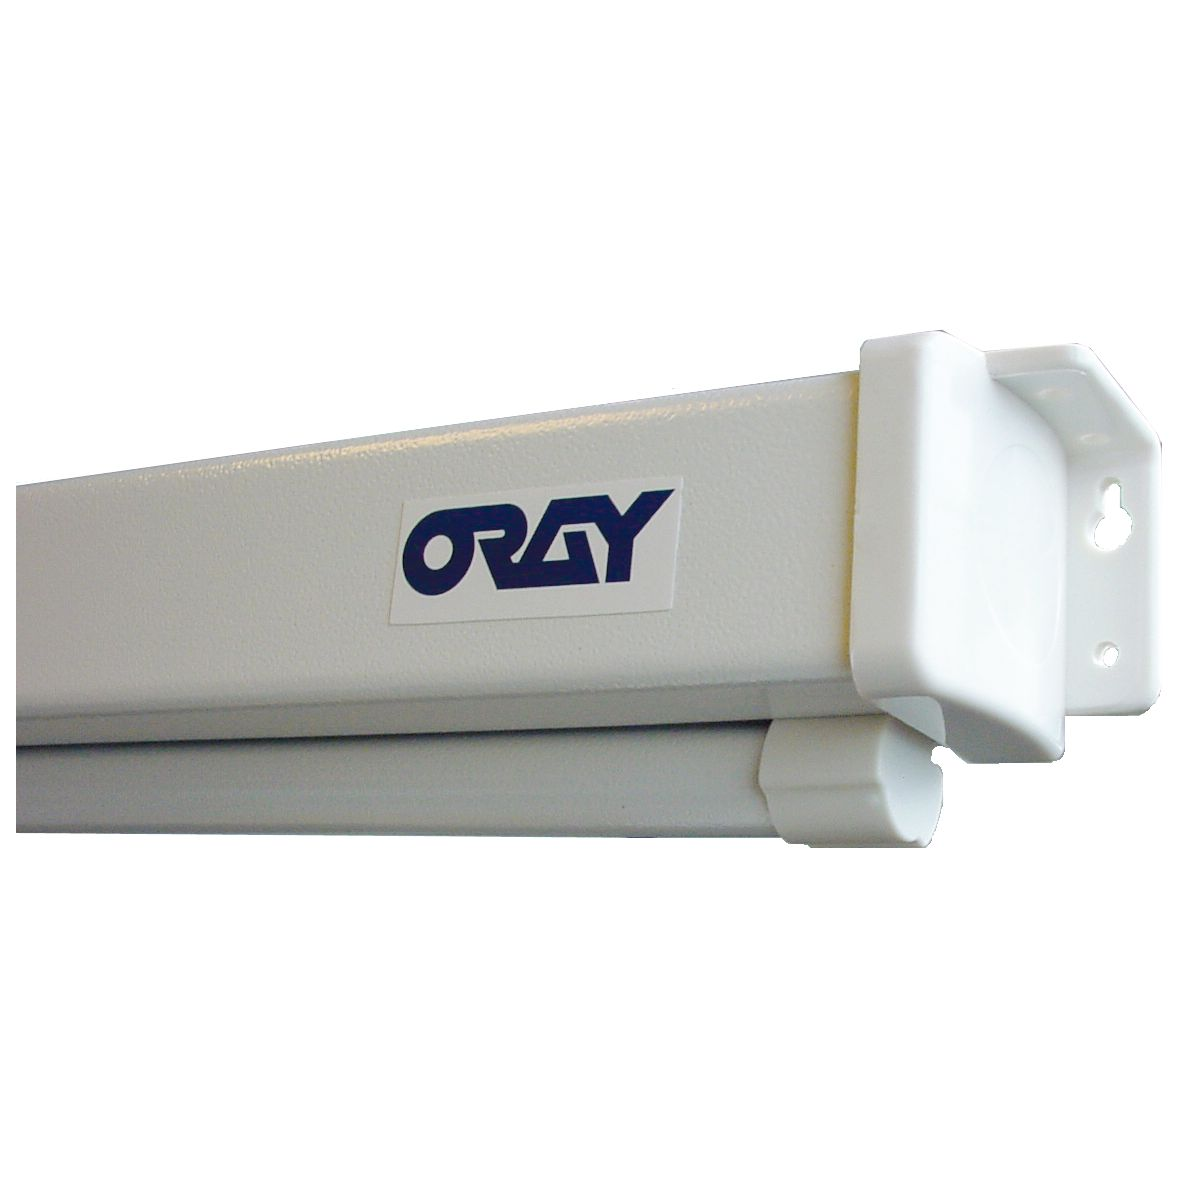 Ecran de projection oray 2000 hc 101x180 manuel (photo)